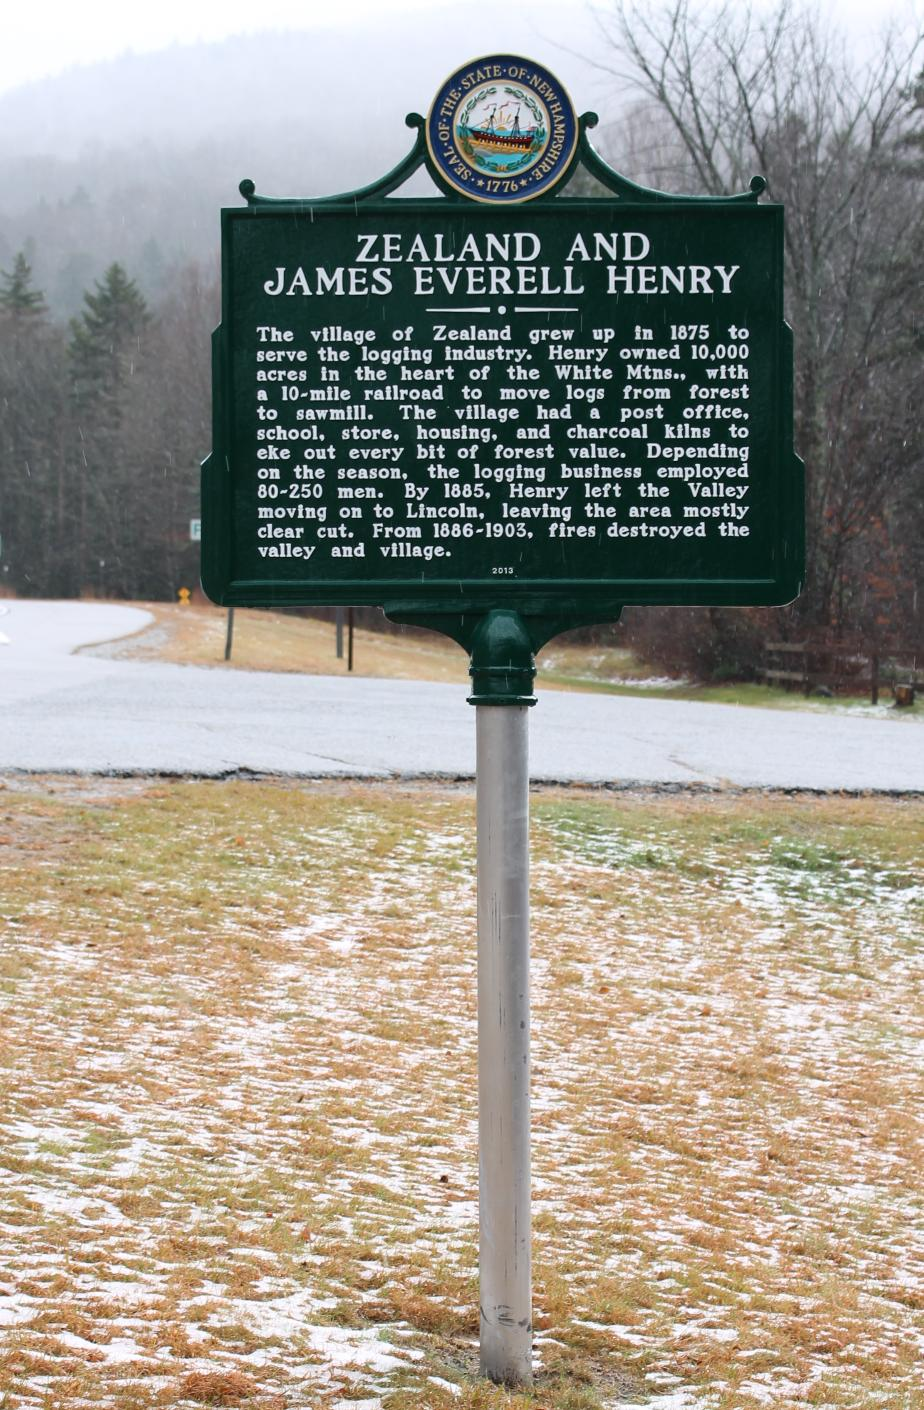 Zealand and James Everell Henry Historicasl Marker - Carroll New Hampshire